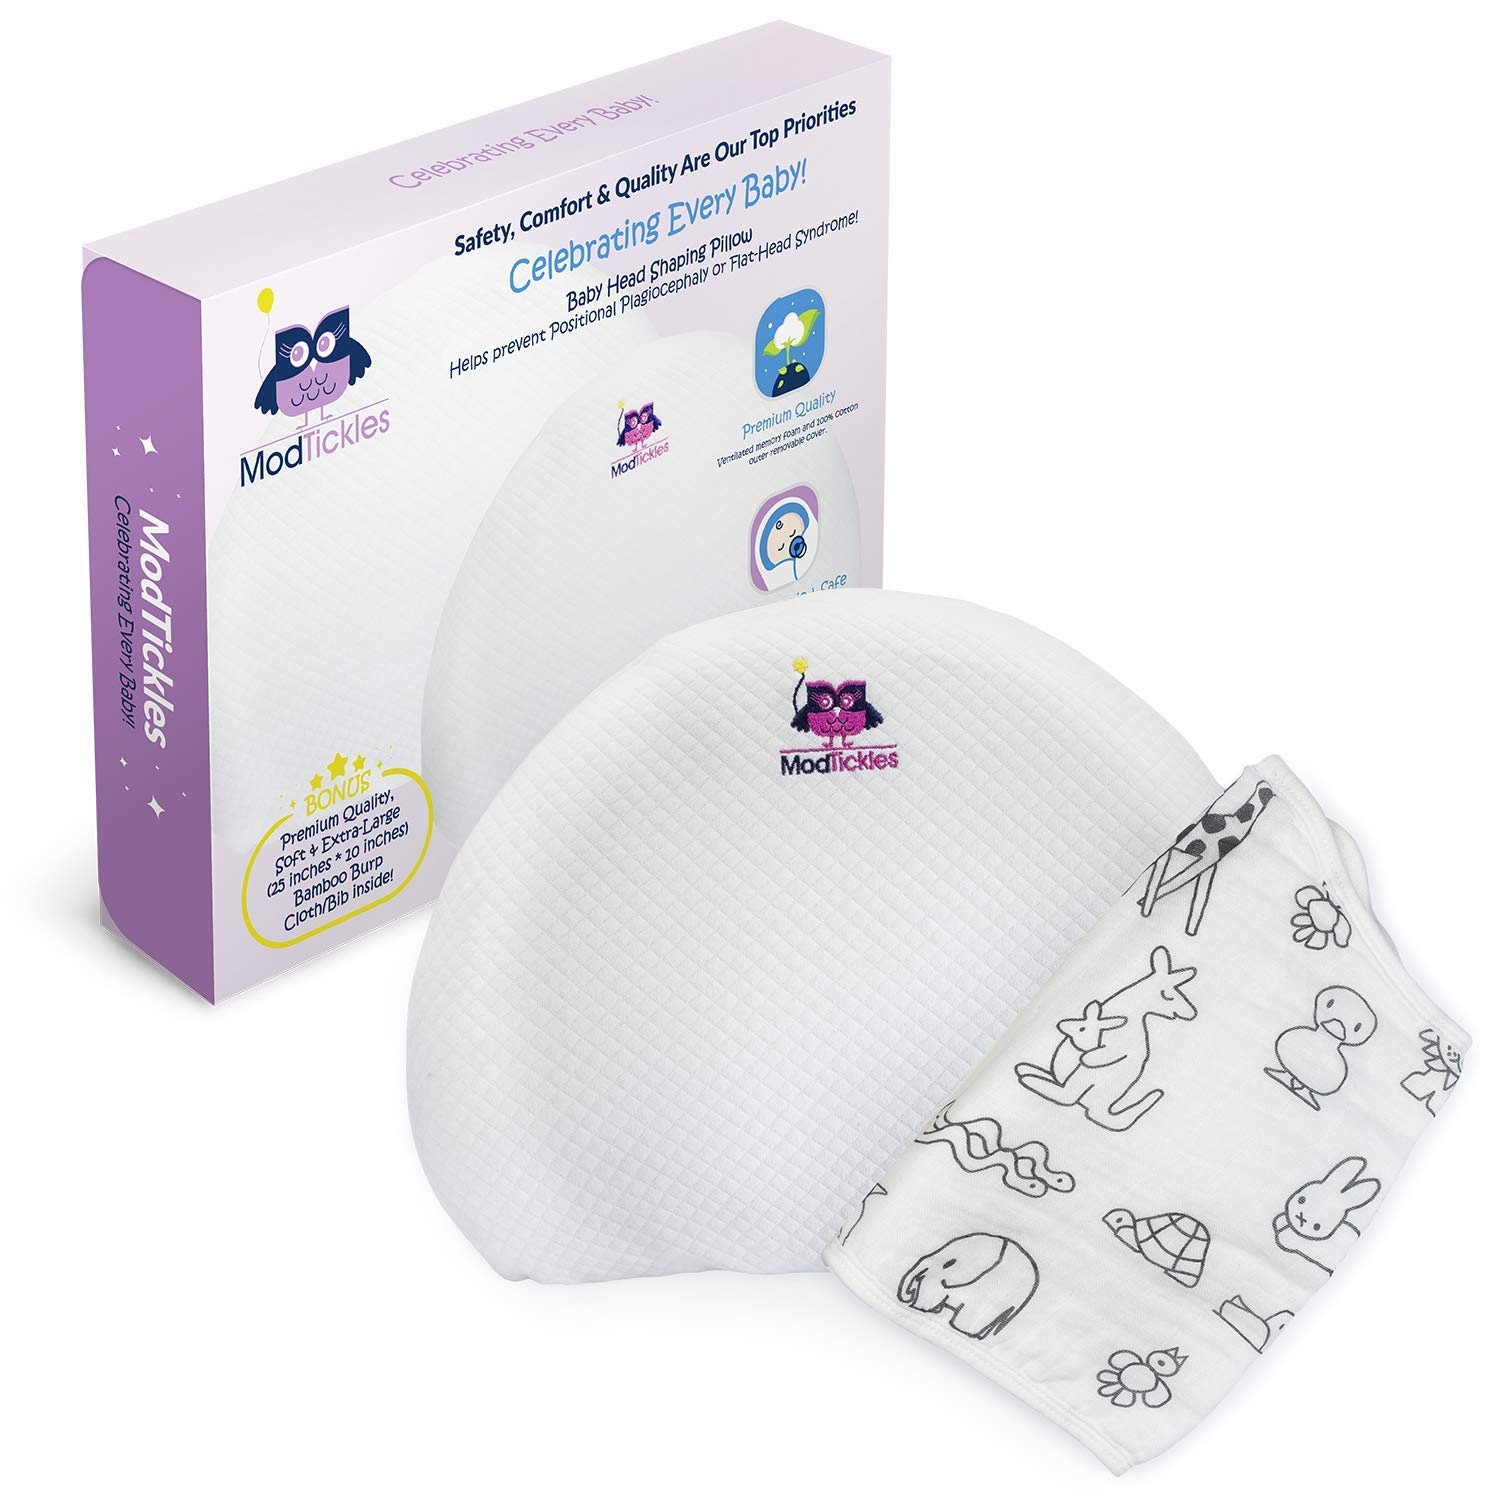 Baby Head Shaping Pillow - Prevent Flat Head Syndrome - Head Support for  Infants & Newborns - Firm Memory Foam Pillow - Keep Head Round & Avoid Flat